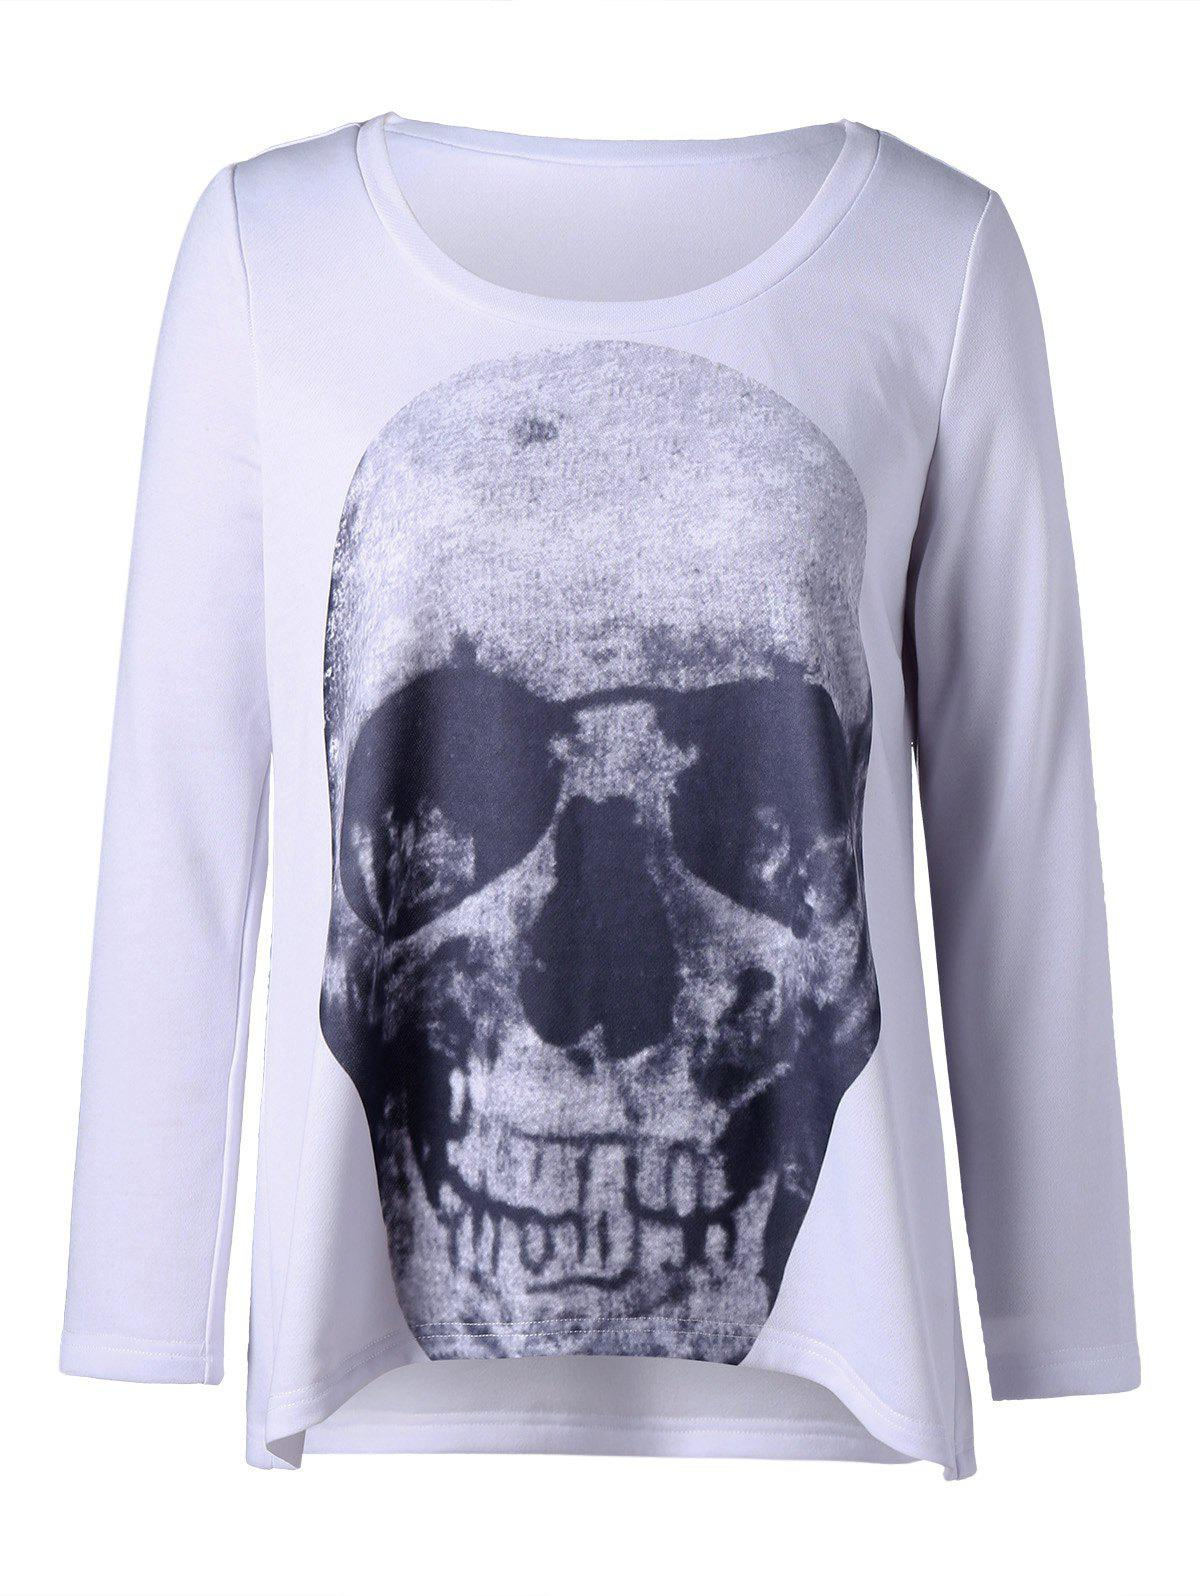 Plus Size Skull Long Sleeve T-shirt - WHITE 3XL